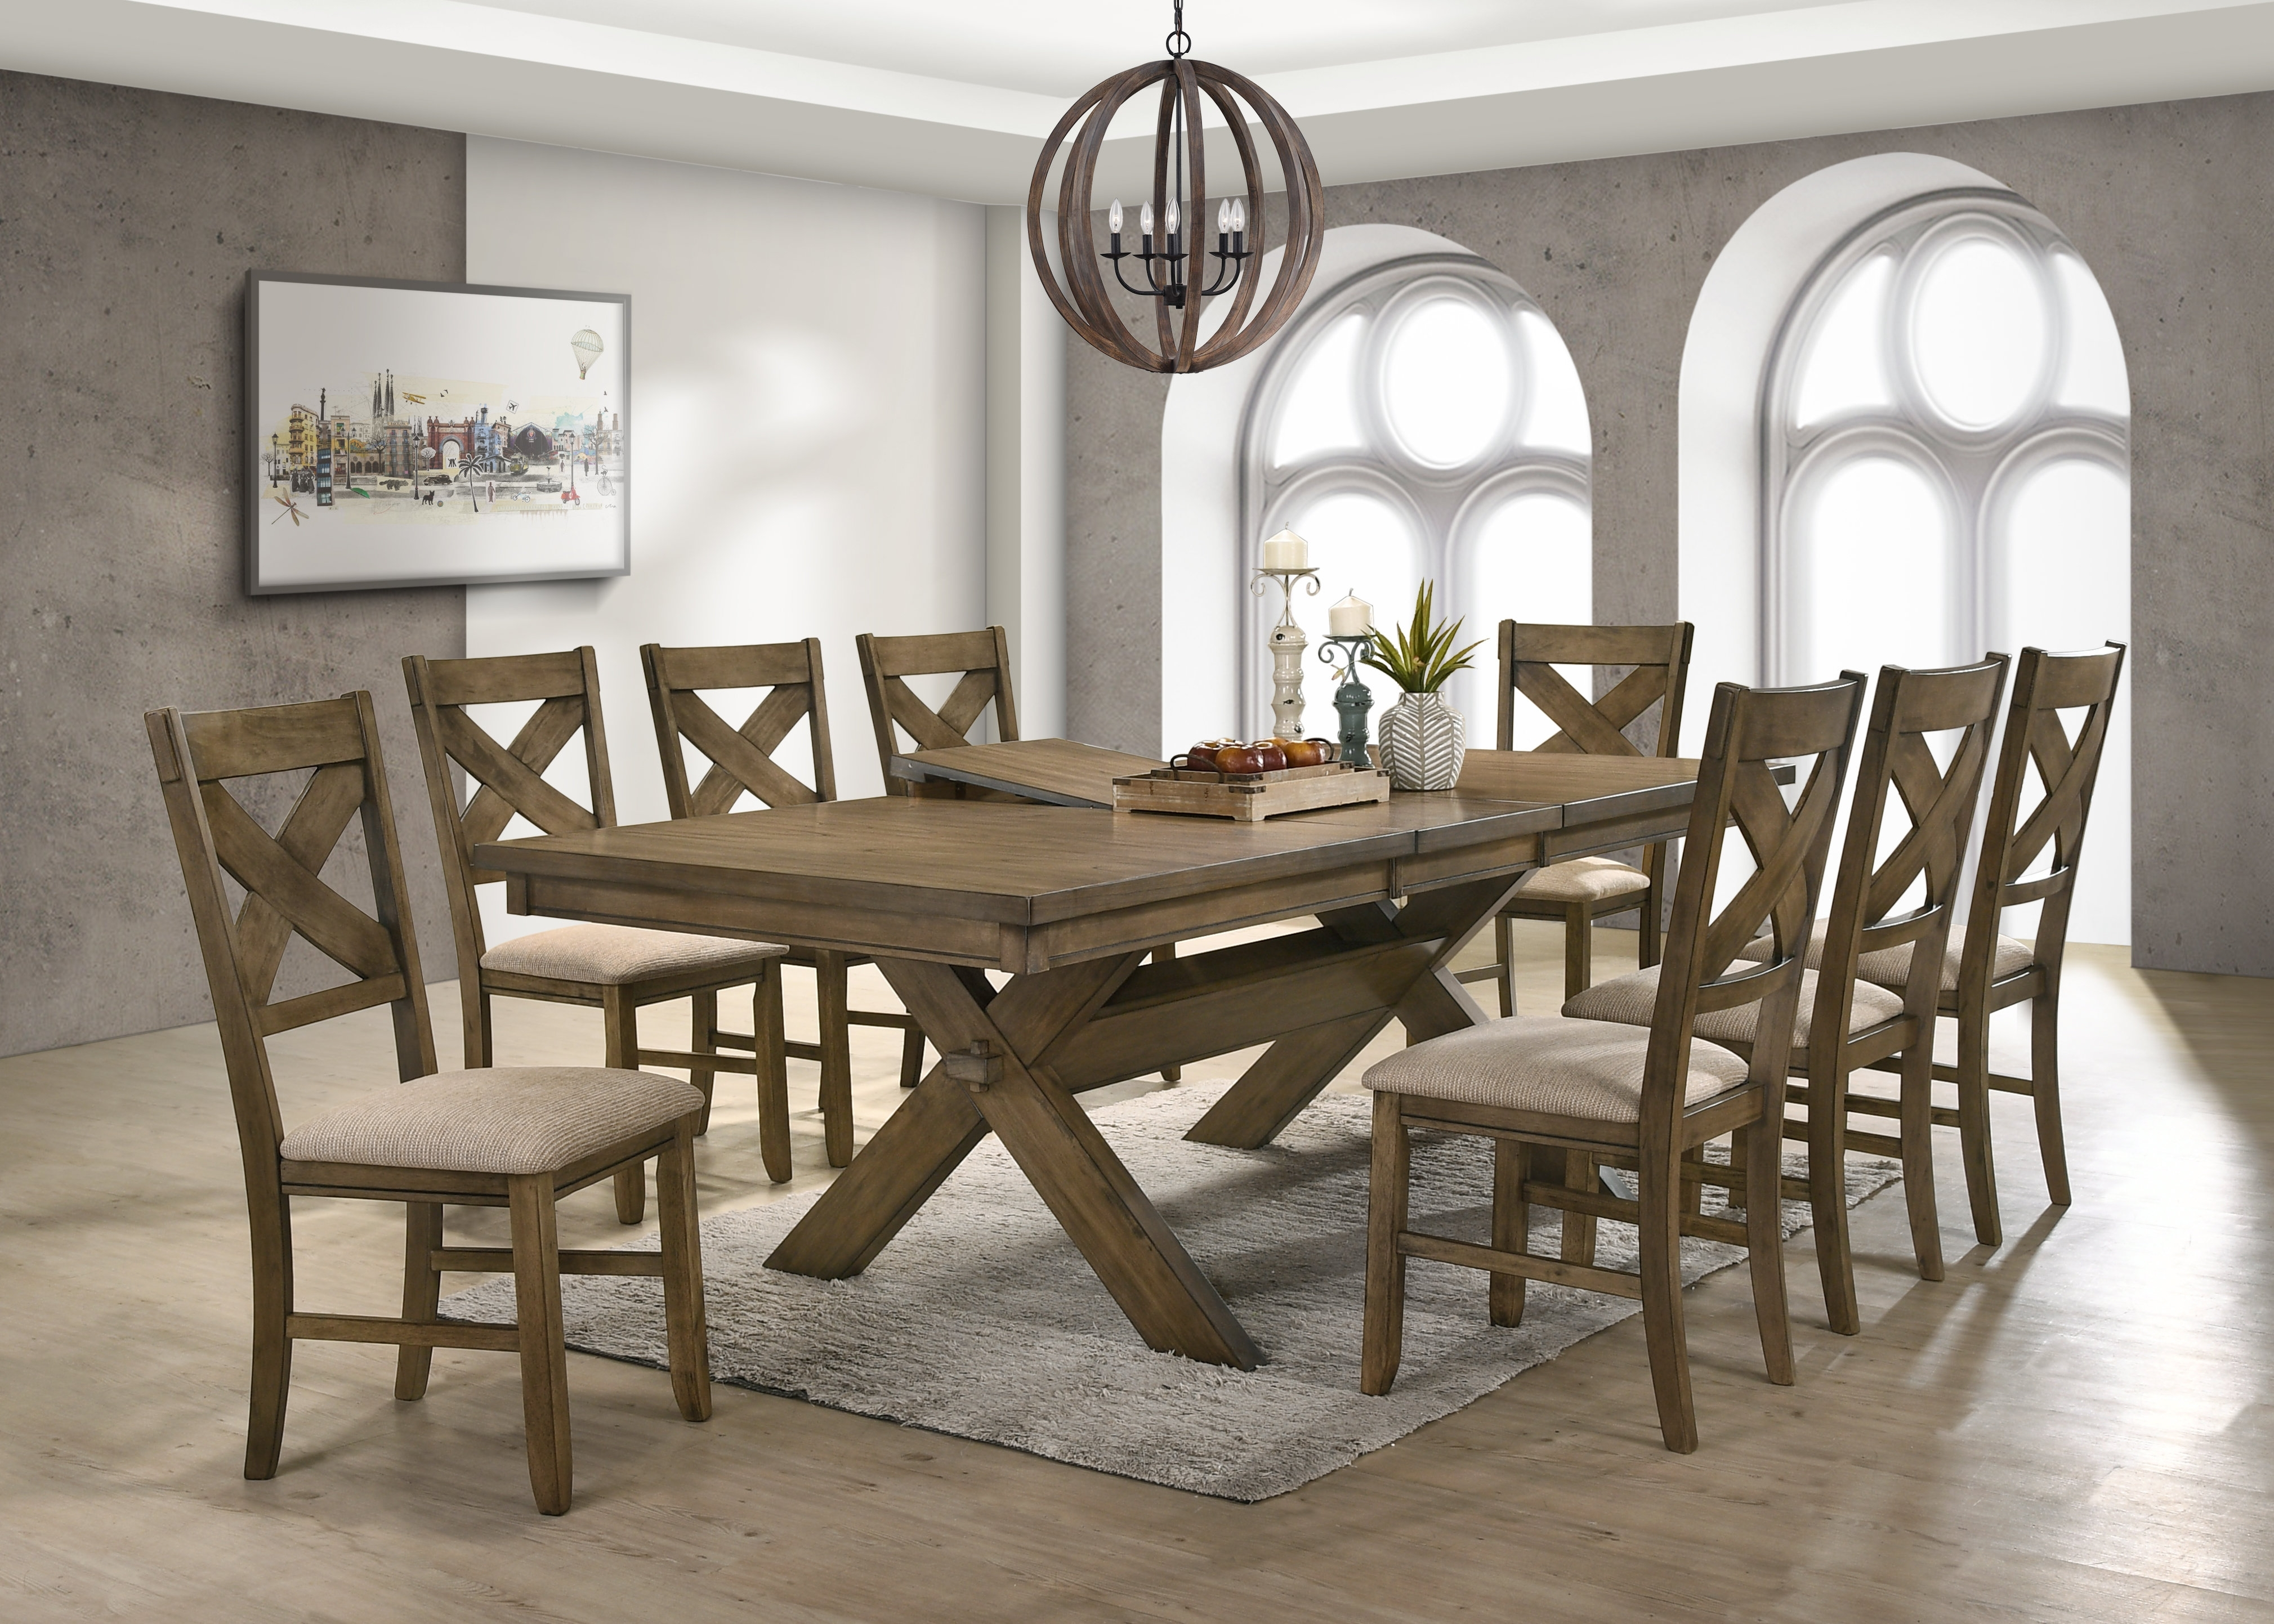 Gracie Oaks Poe 9 Piece Extendable Dining Set | Wayfair Throughout Most Recent Chandler 7 Piece Extension Dining Sets With Fabric Side Chairs (View 14 of 20)